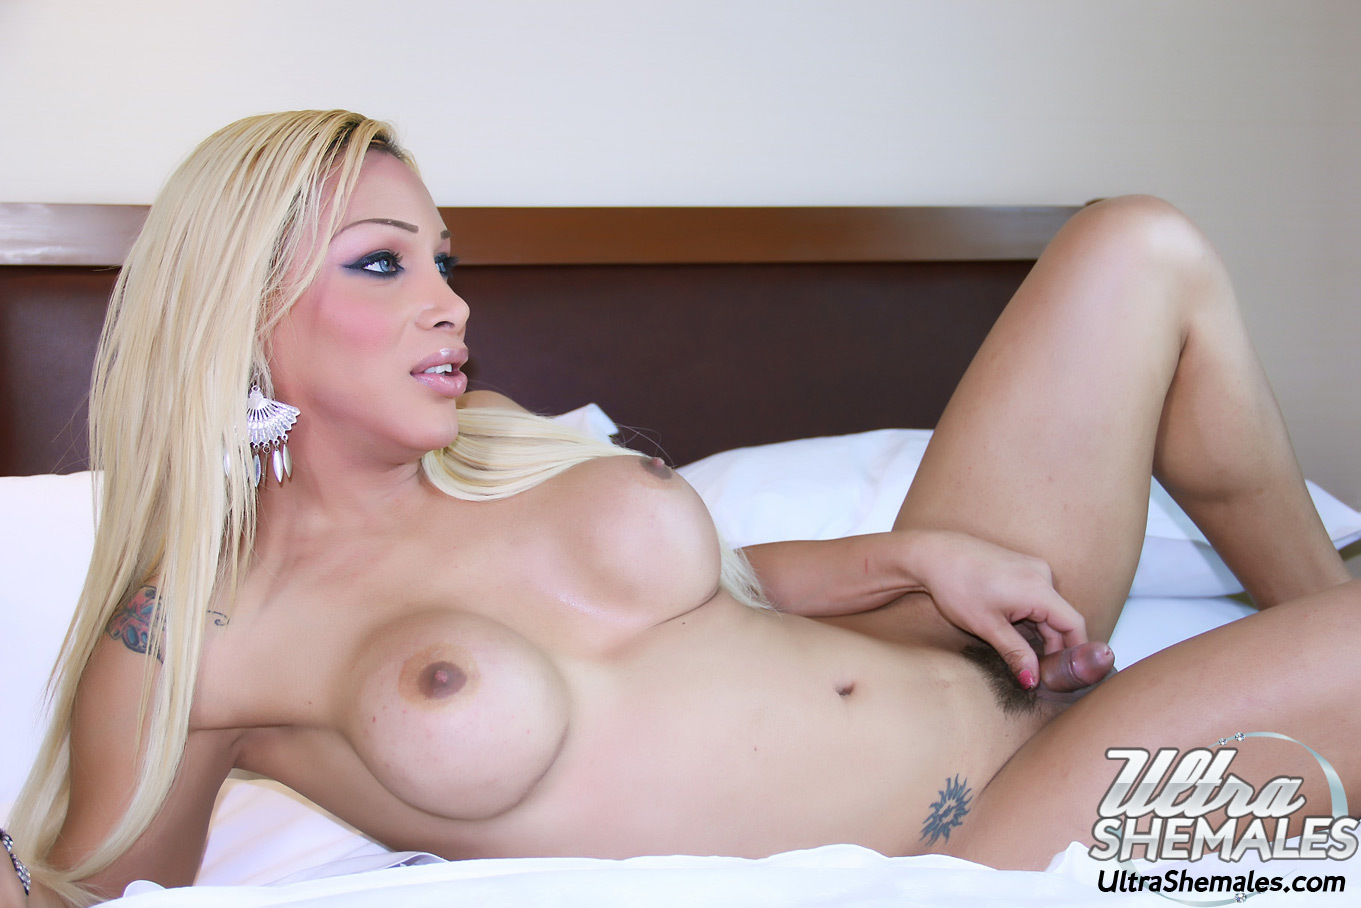 Yummy blonde tranny Solanch with a nice set of tits bending over for you (9/13)